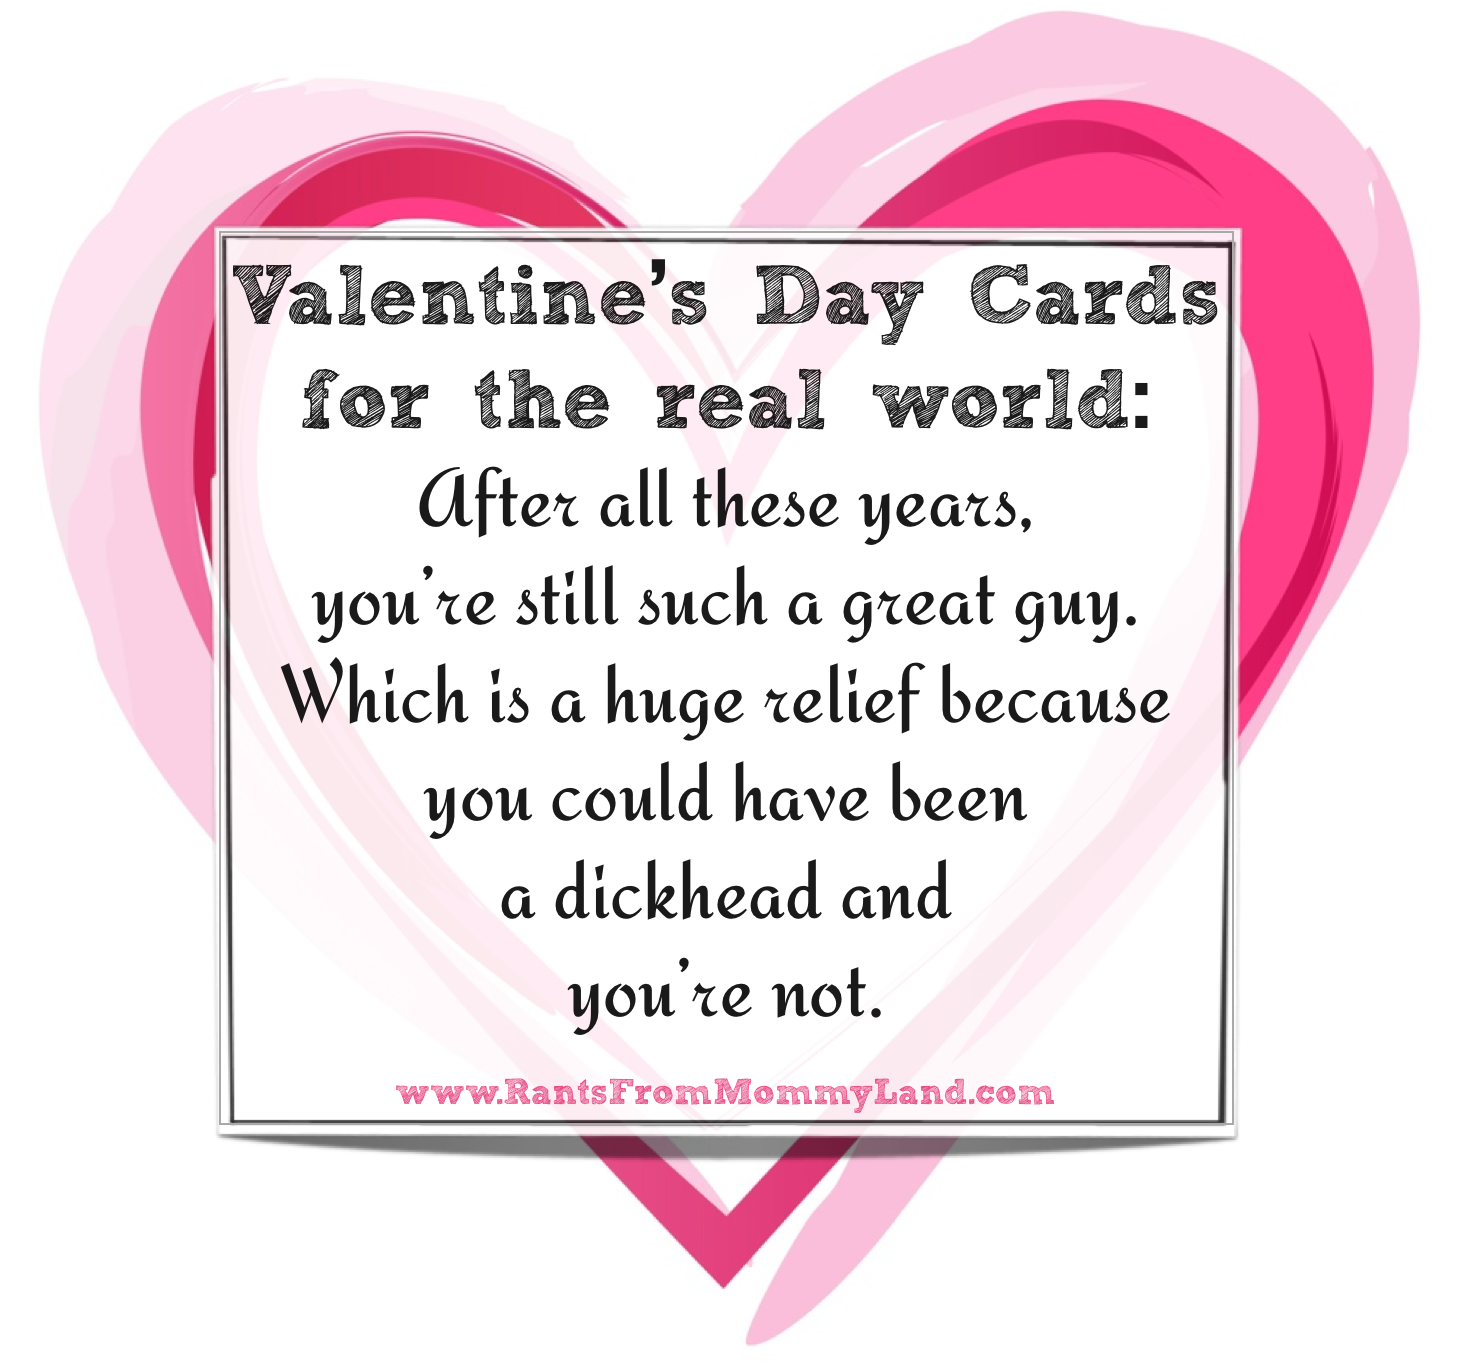 RANTS FROM MOMMYLAND Valentines for the Real World – Great Valentine Cards